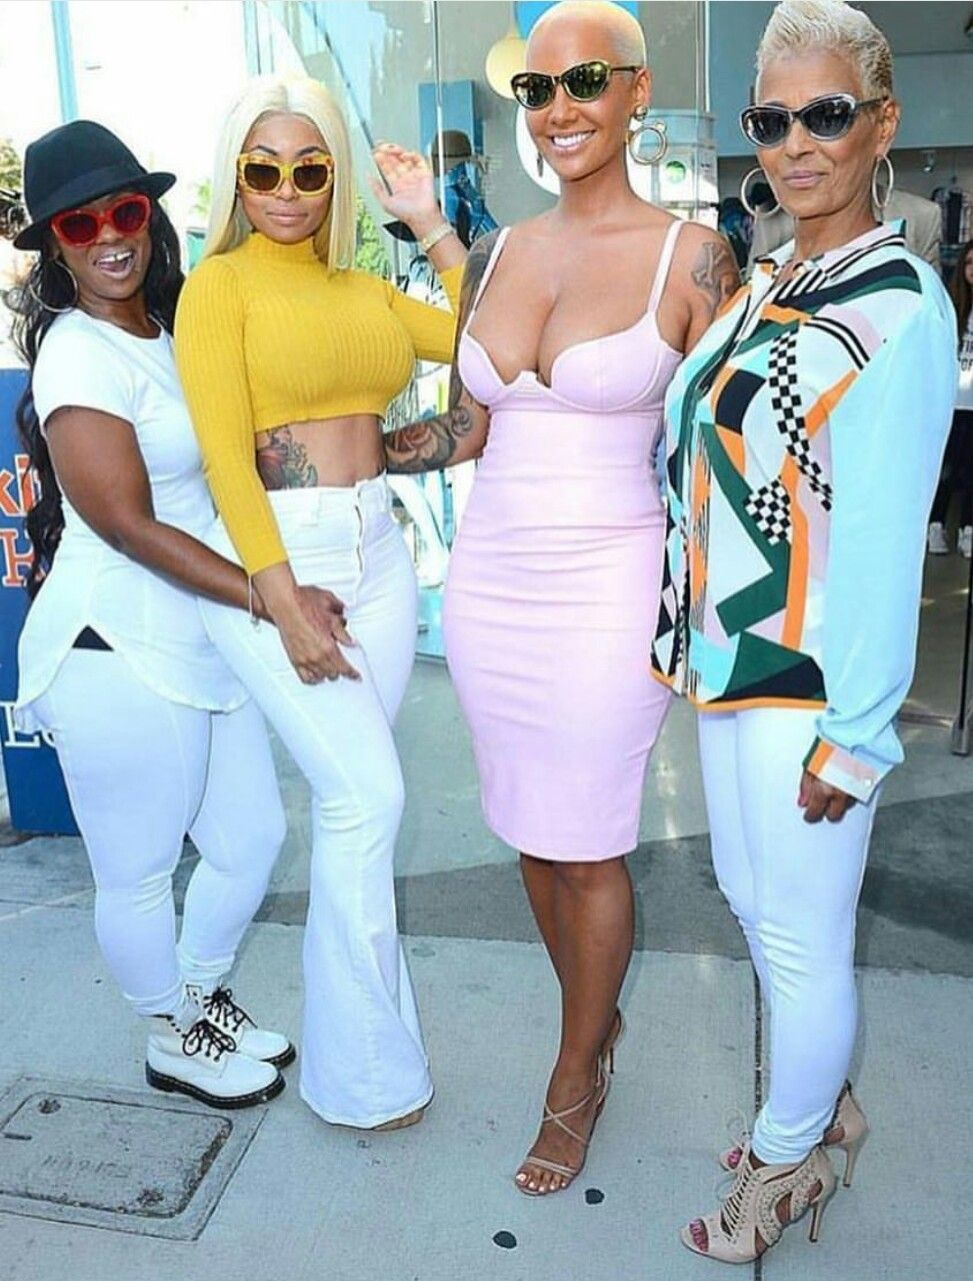 a3a6ce6139ccb Blac Chyna and Amber Rose posing with their mothers.